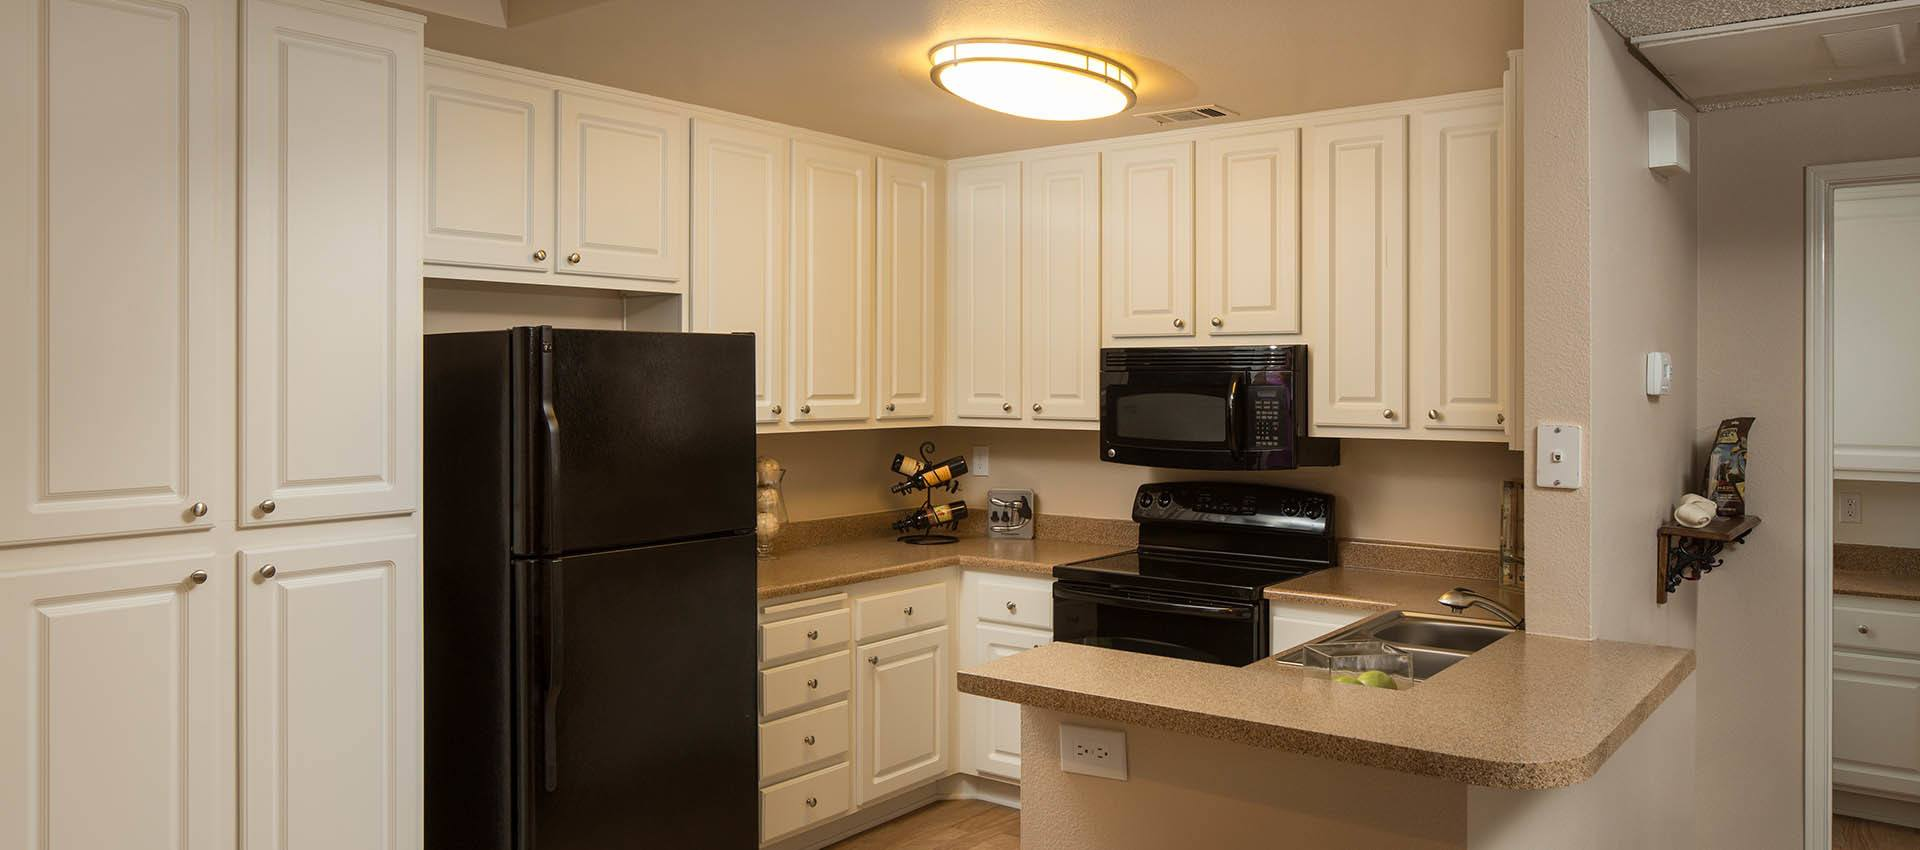 Standard Kitchen With Black Appliances at Paloma Summit Condominium Rentals in Foothill Ranch, CA